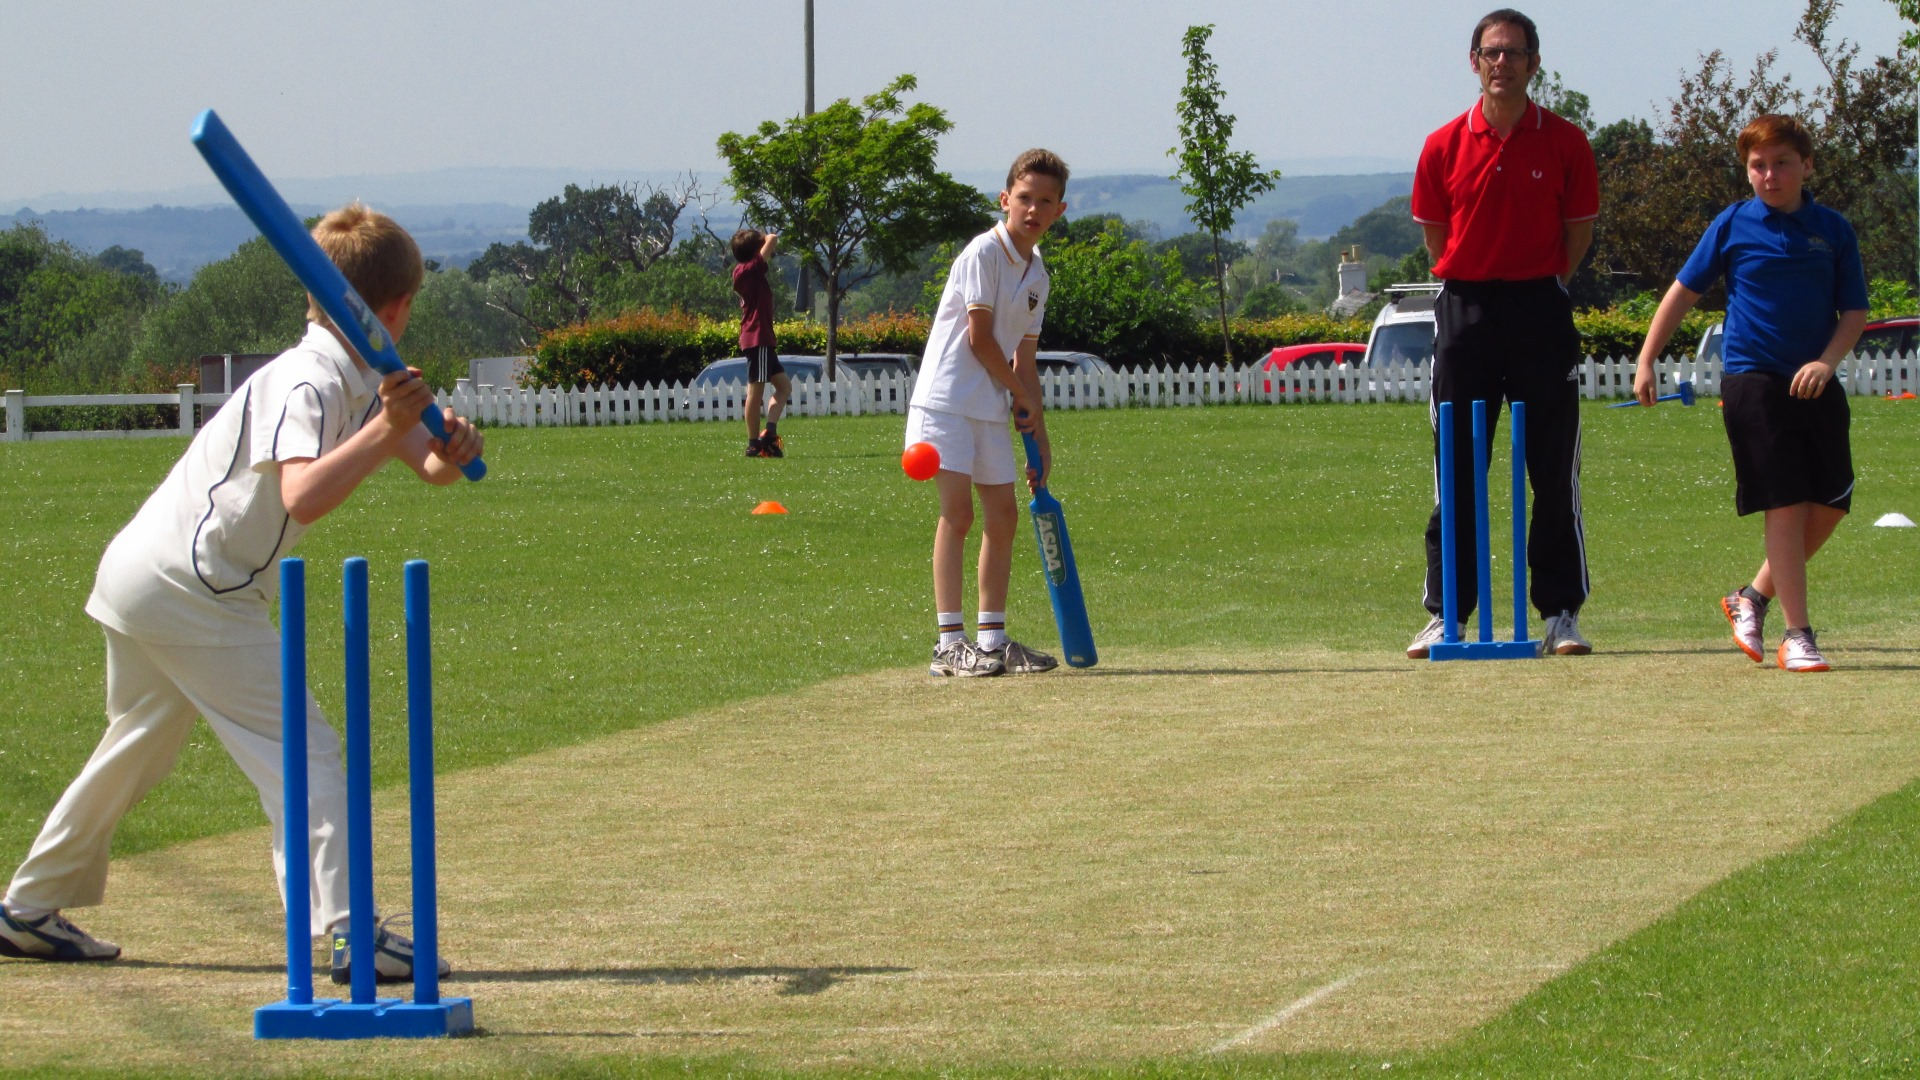 New Forest Bash competition aims to appeal to under 9s